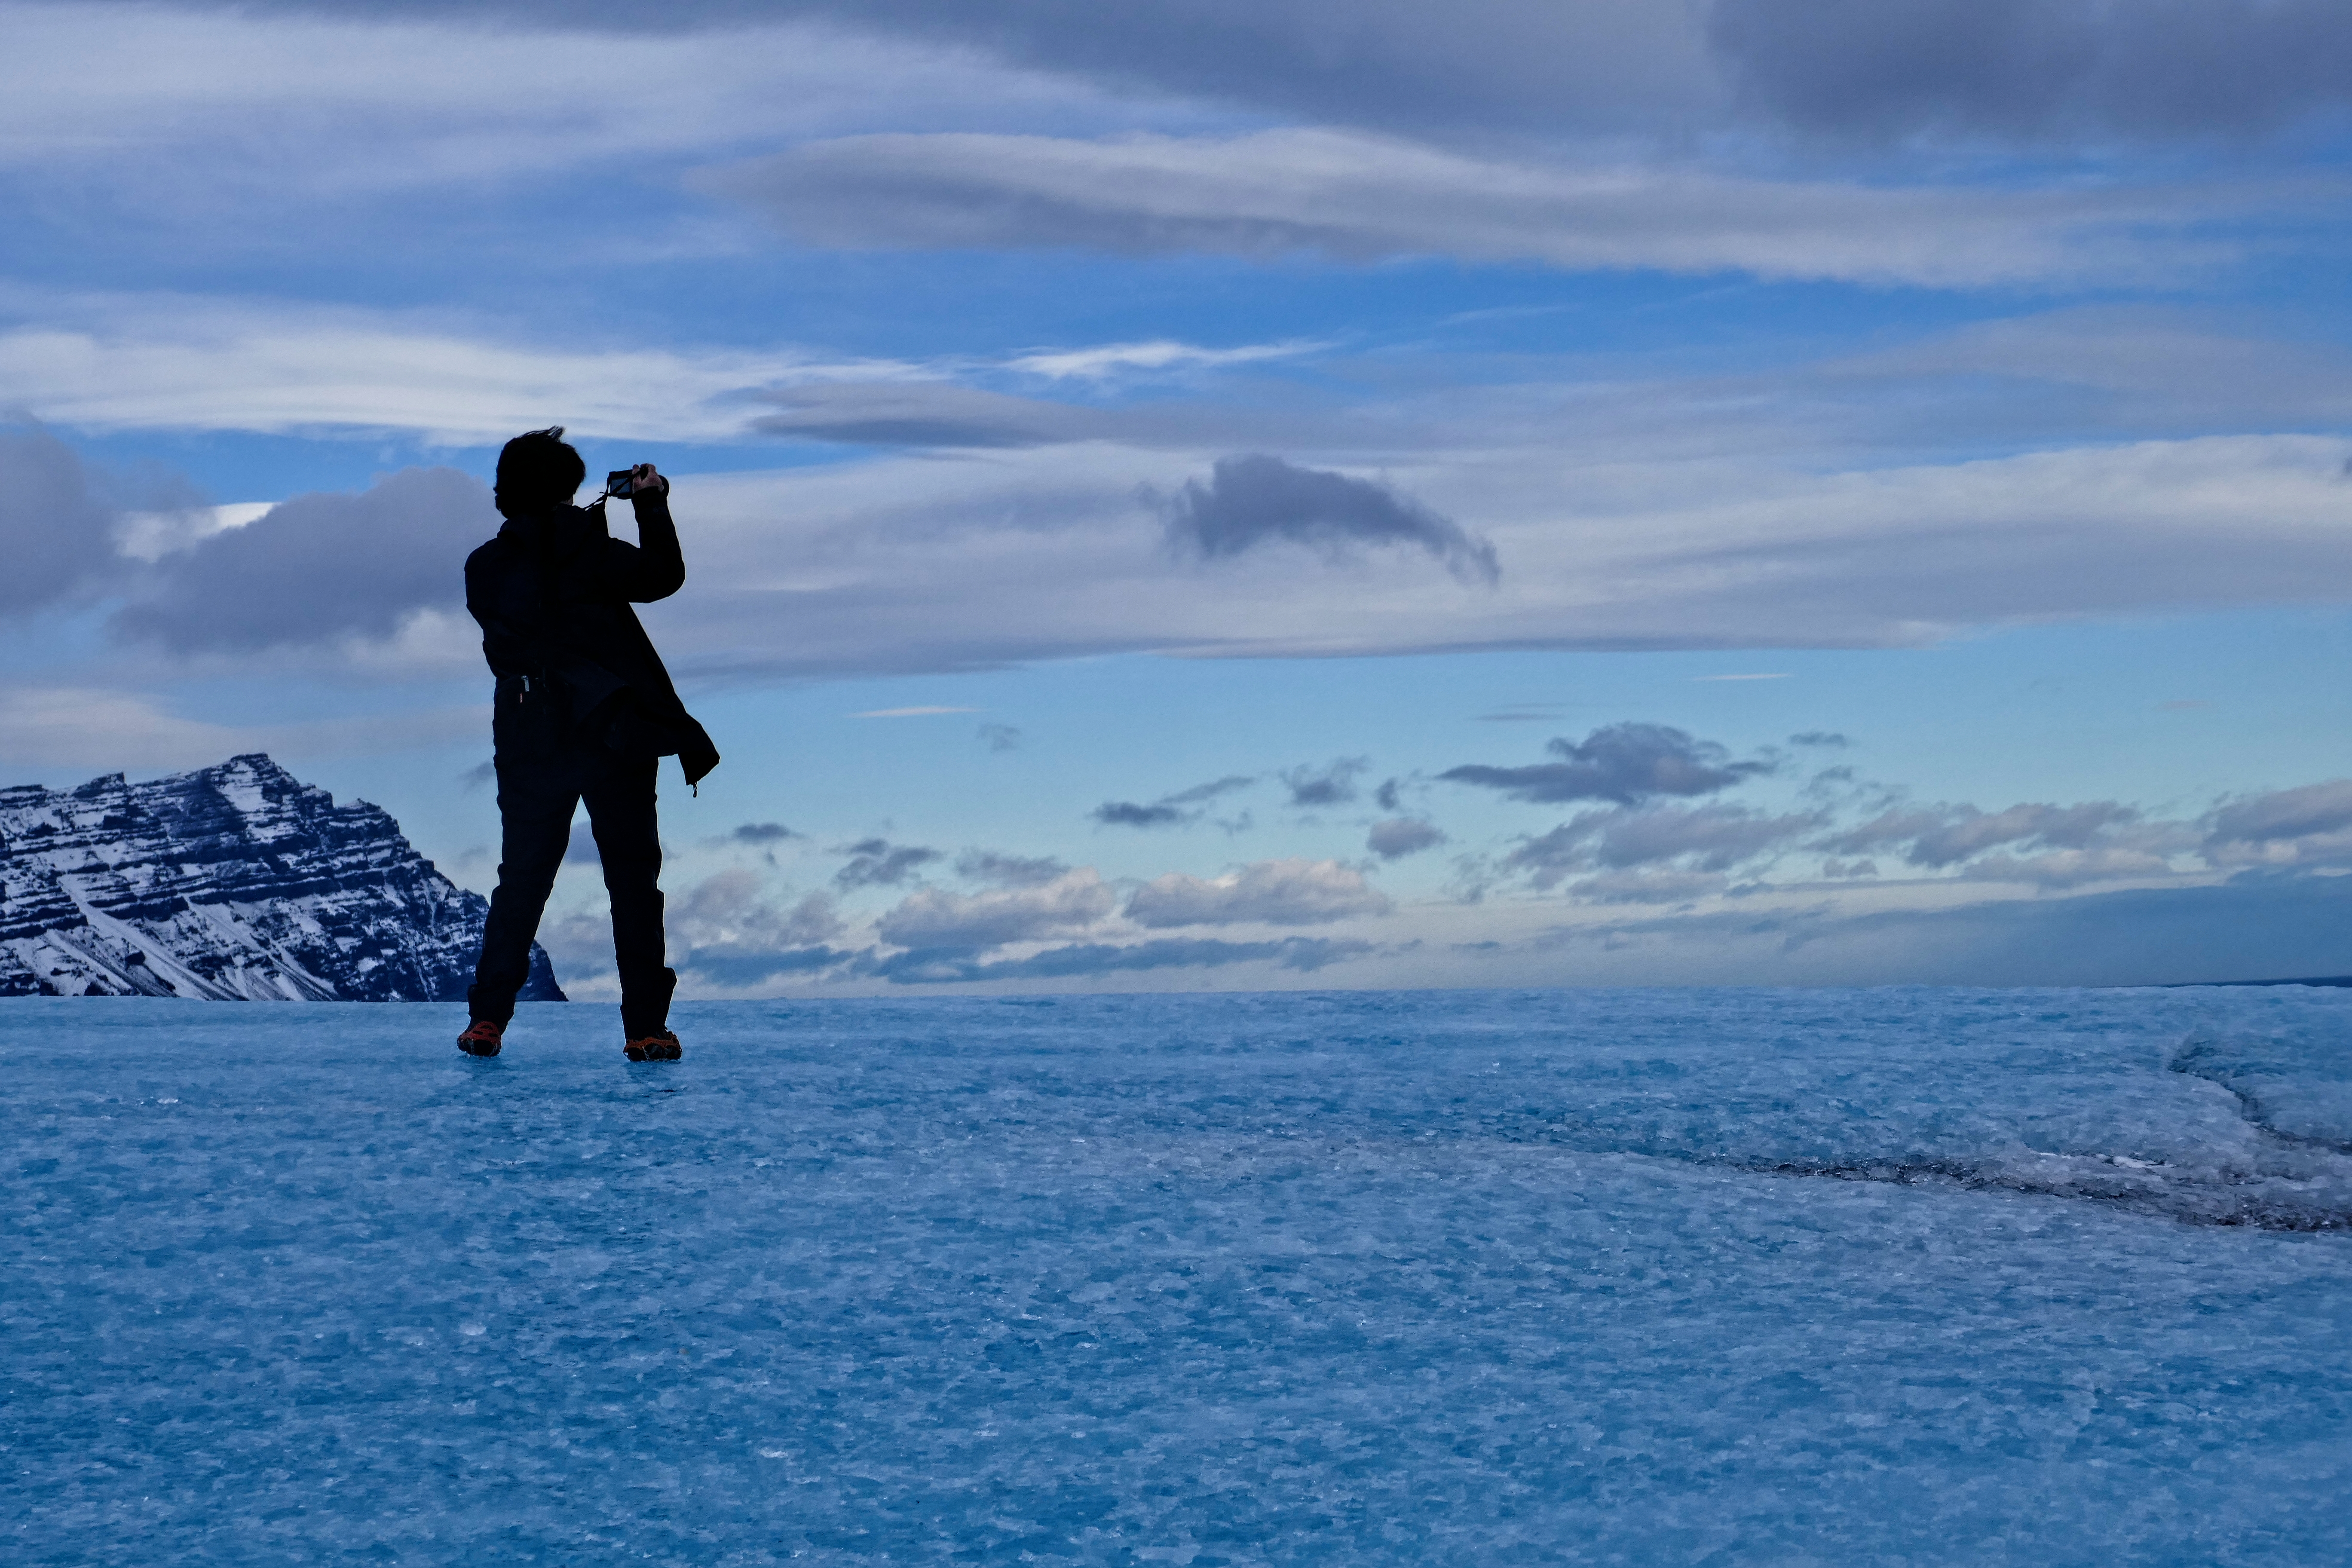 Ice Cave and Hiking tour - Blue Iceland guest on Vatnajökull glacier, Iceland.